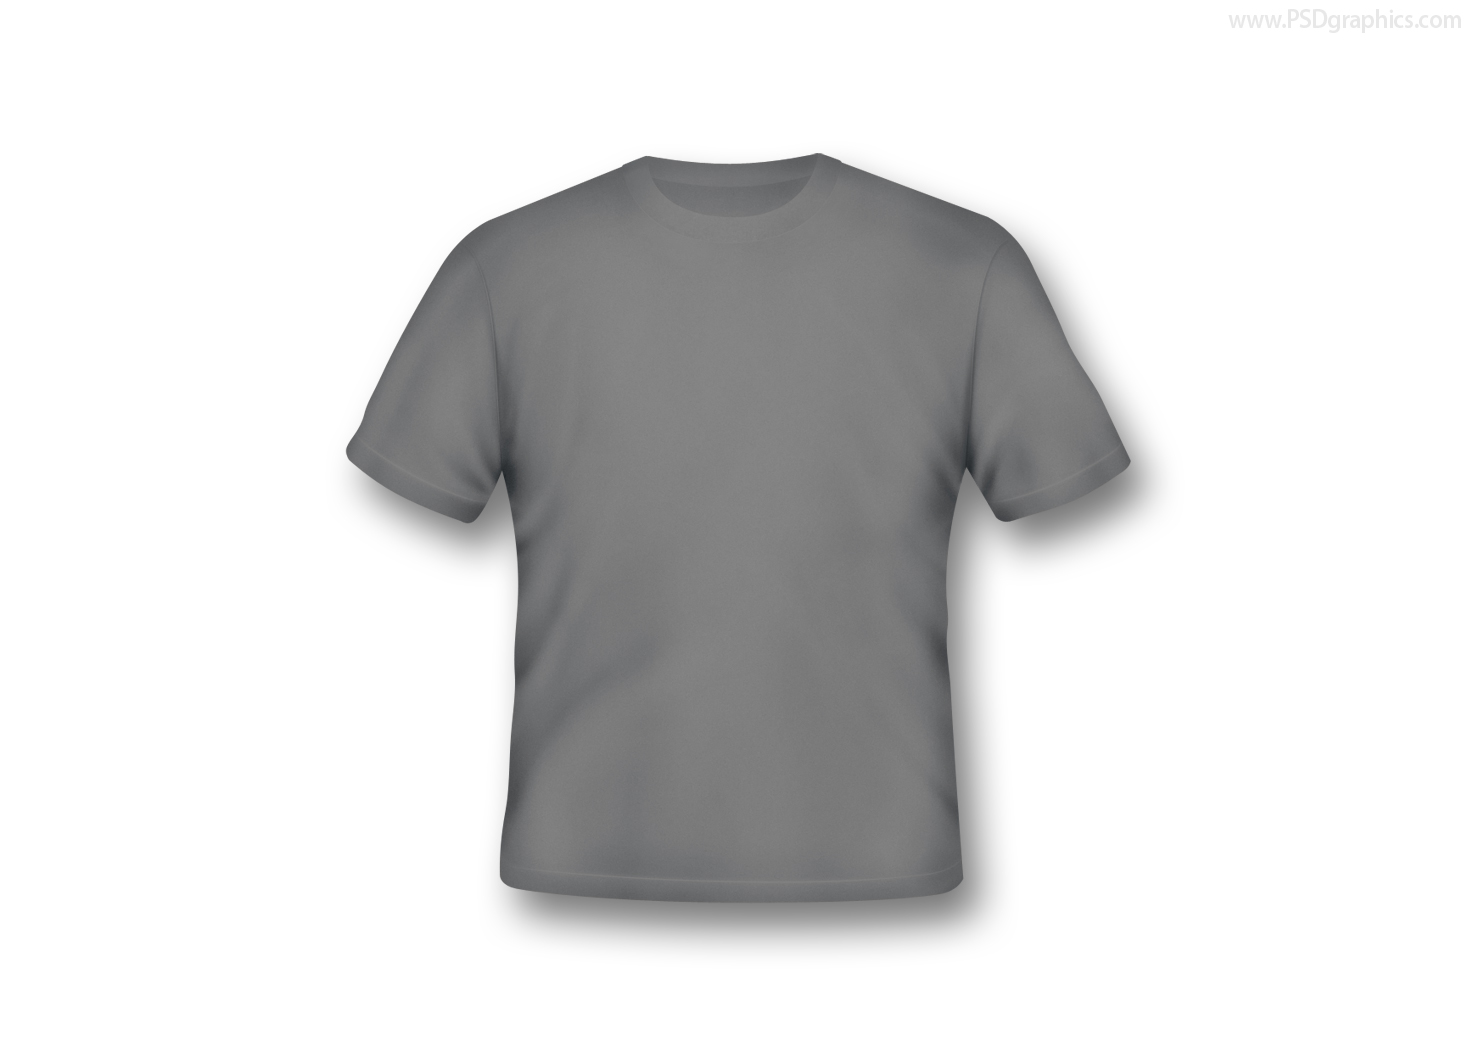 Blank t-shirts in various colors | PSDGraphics